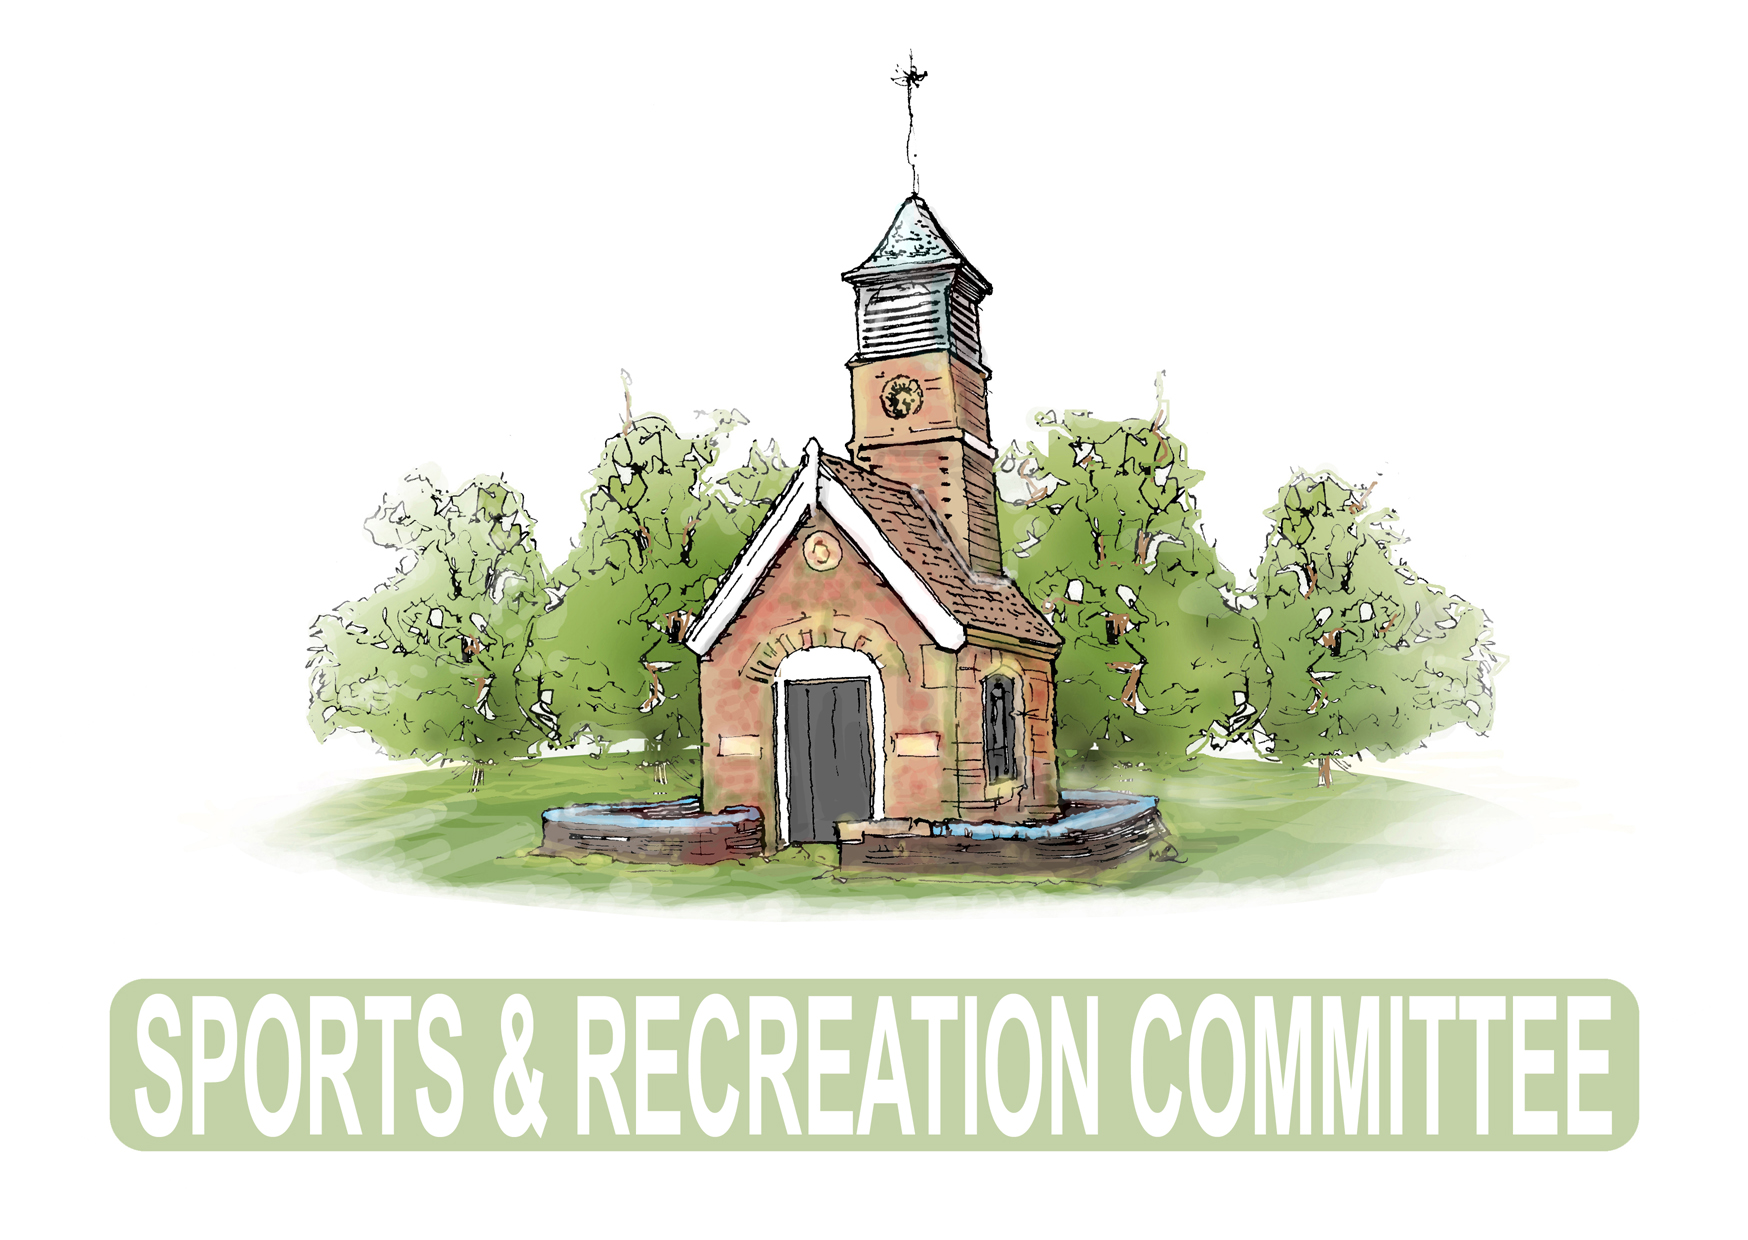 Sports and Recreation Committee logo